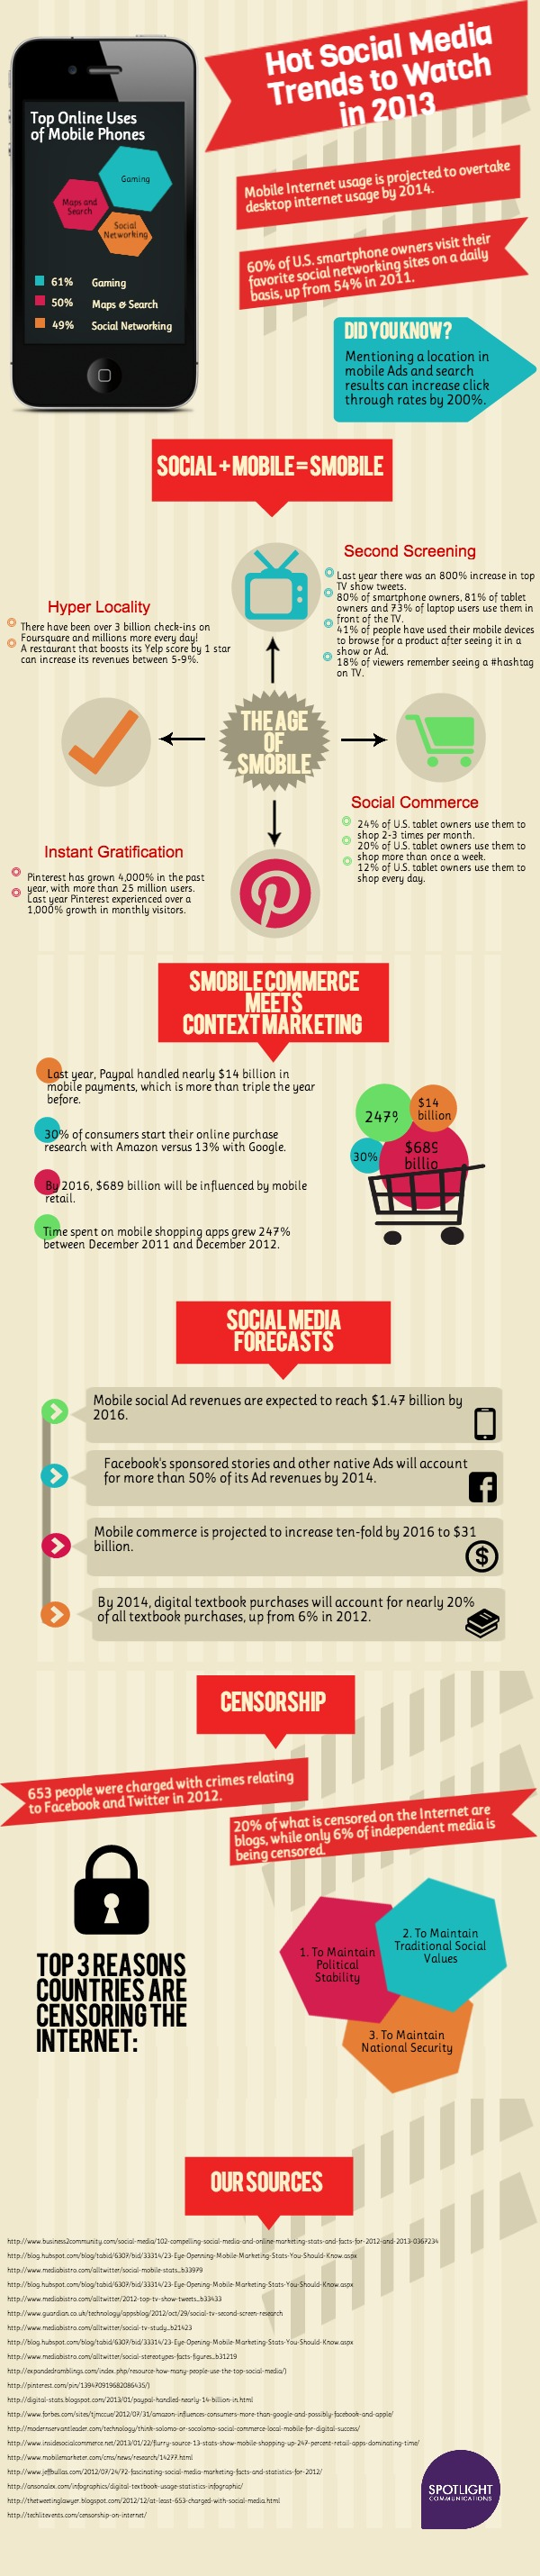 Hot Social Media Trends to Watch in 2013